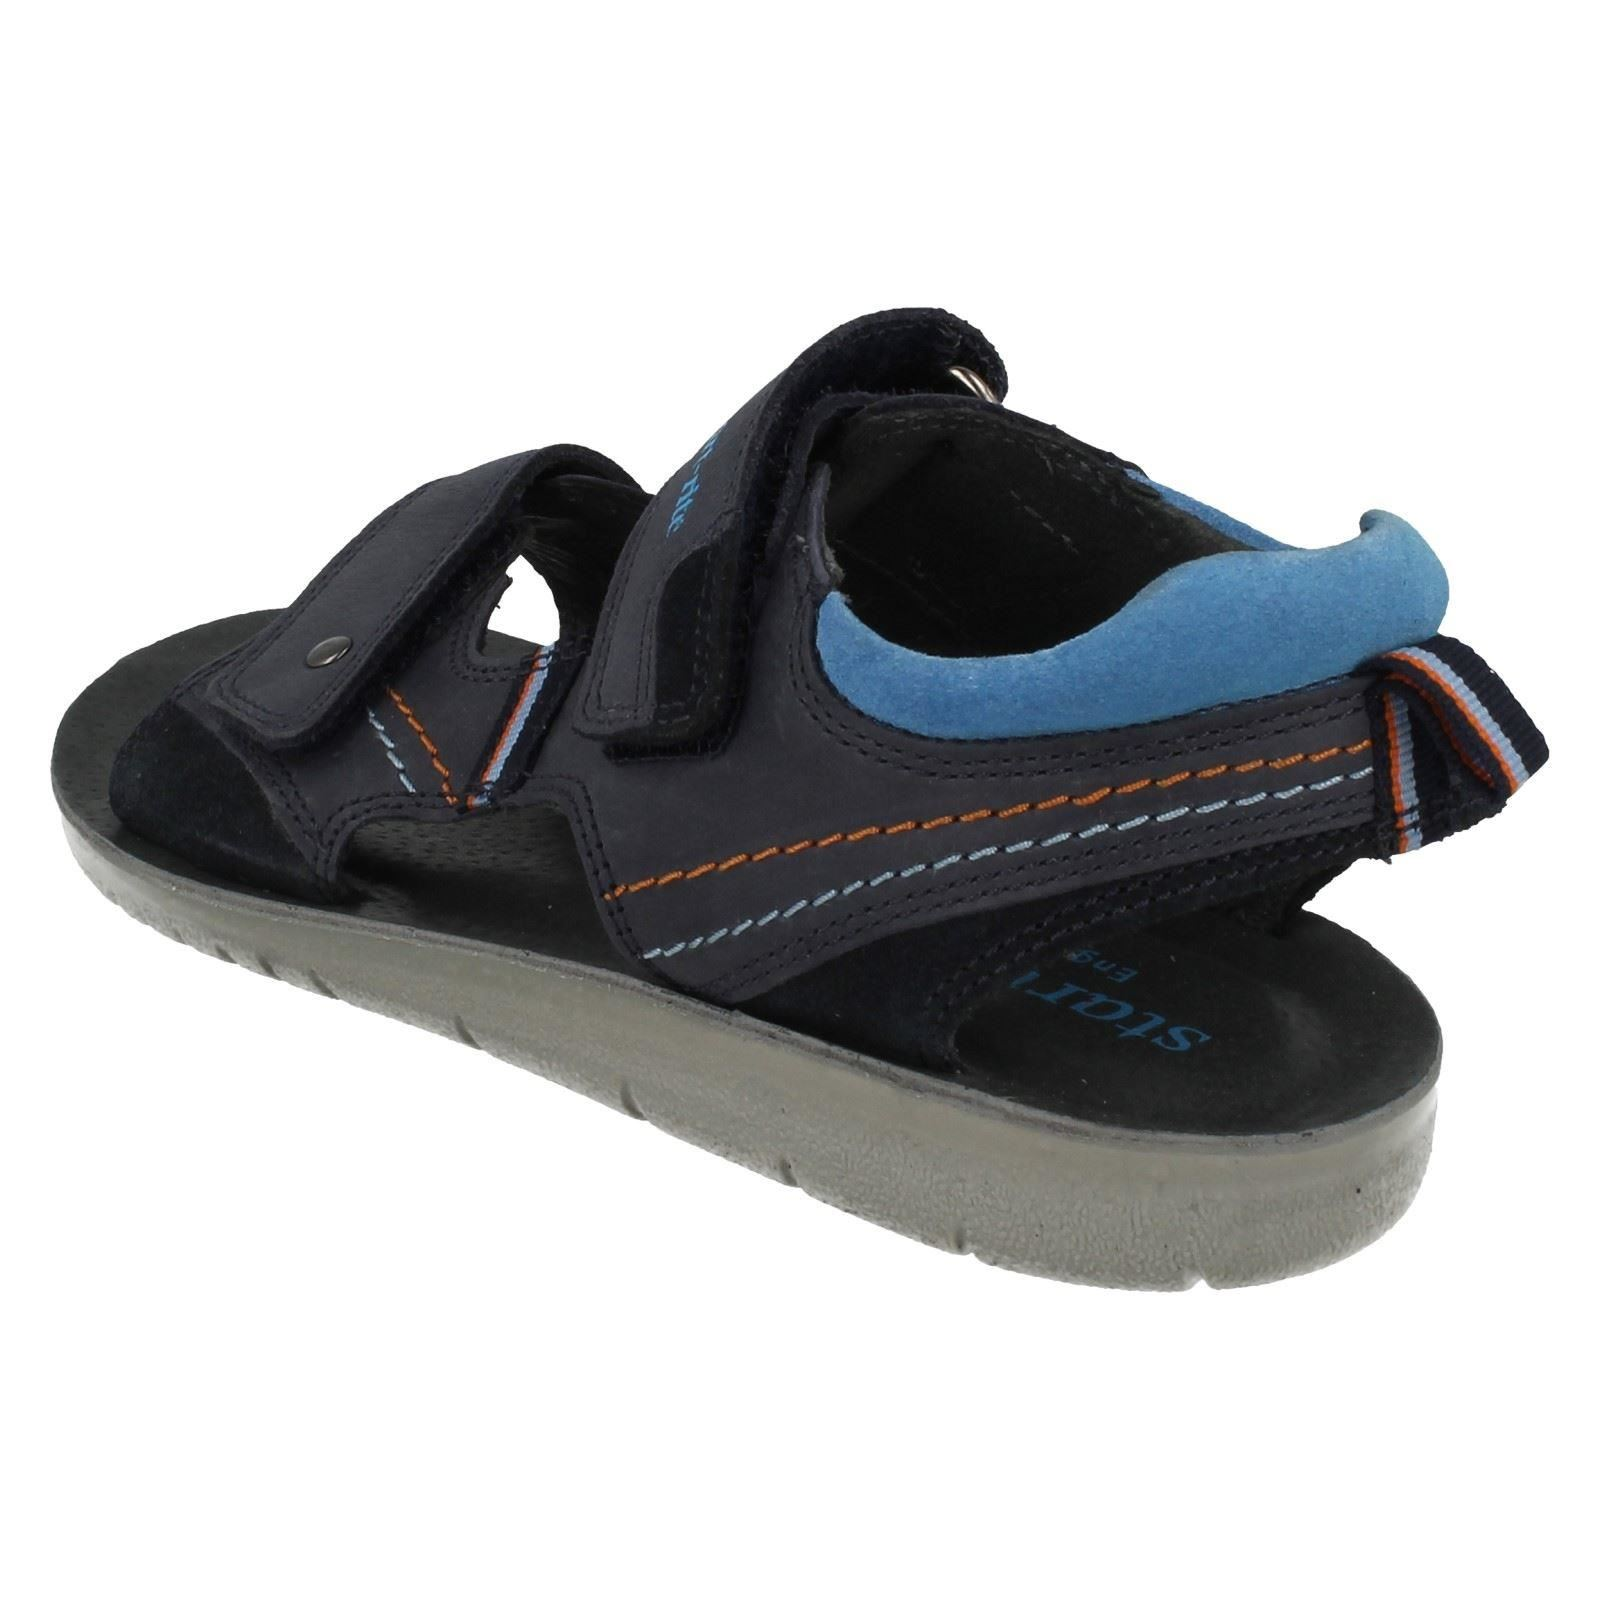 Infant/Junior Boys Startrite Summer Sandals SR Soft Caleb